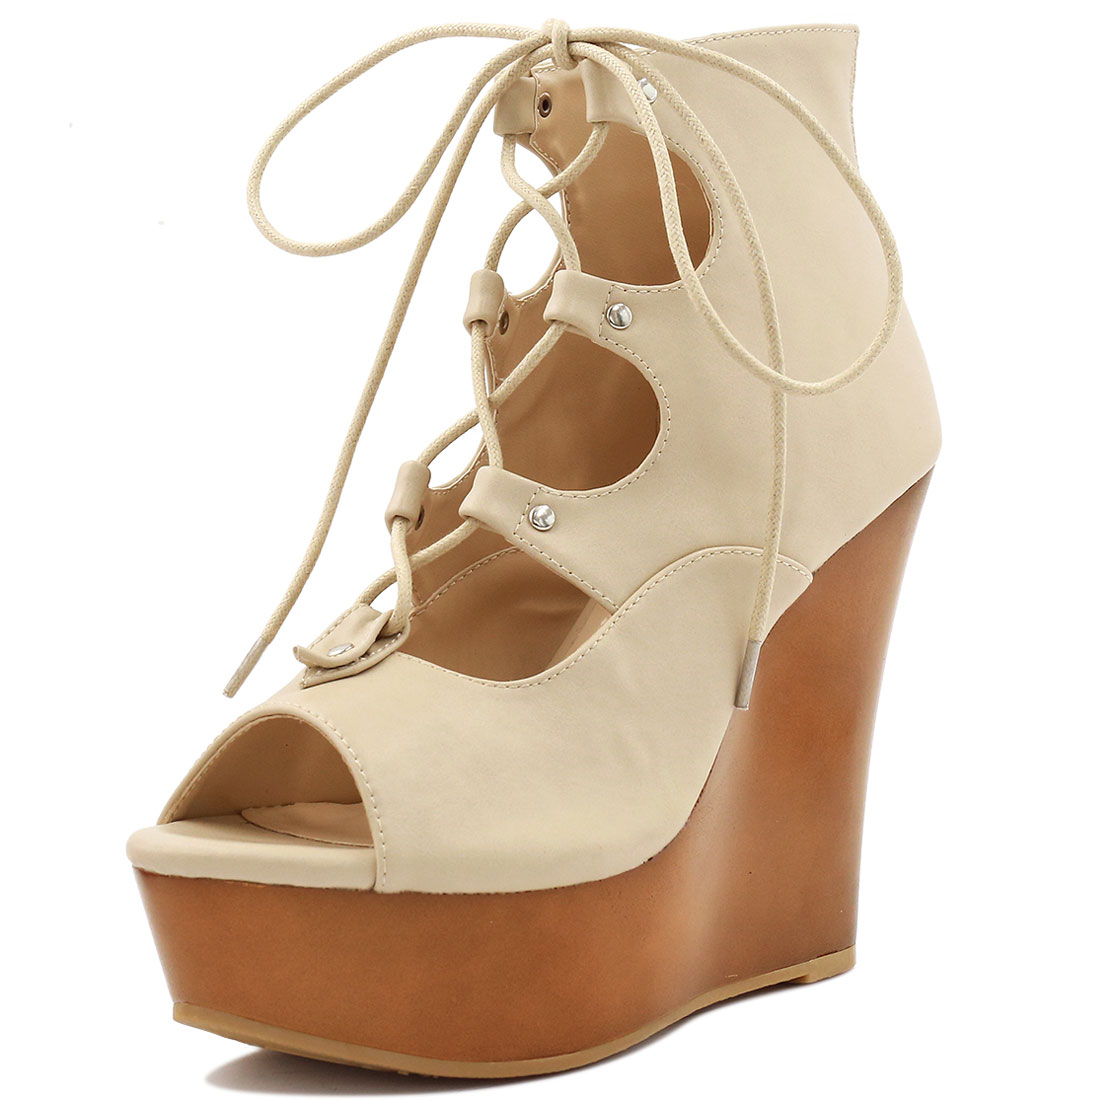 Woman Peep Toe Lace-Up Cutout Platform Wedge Sandals Beige US 11